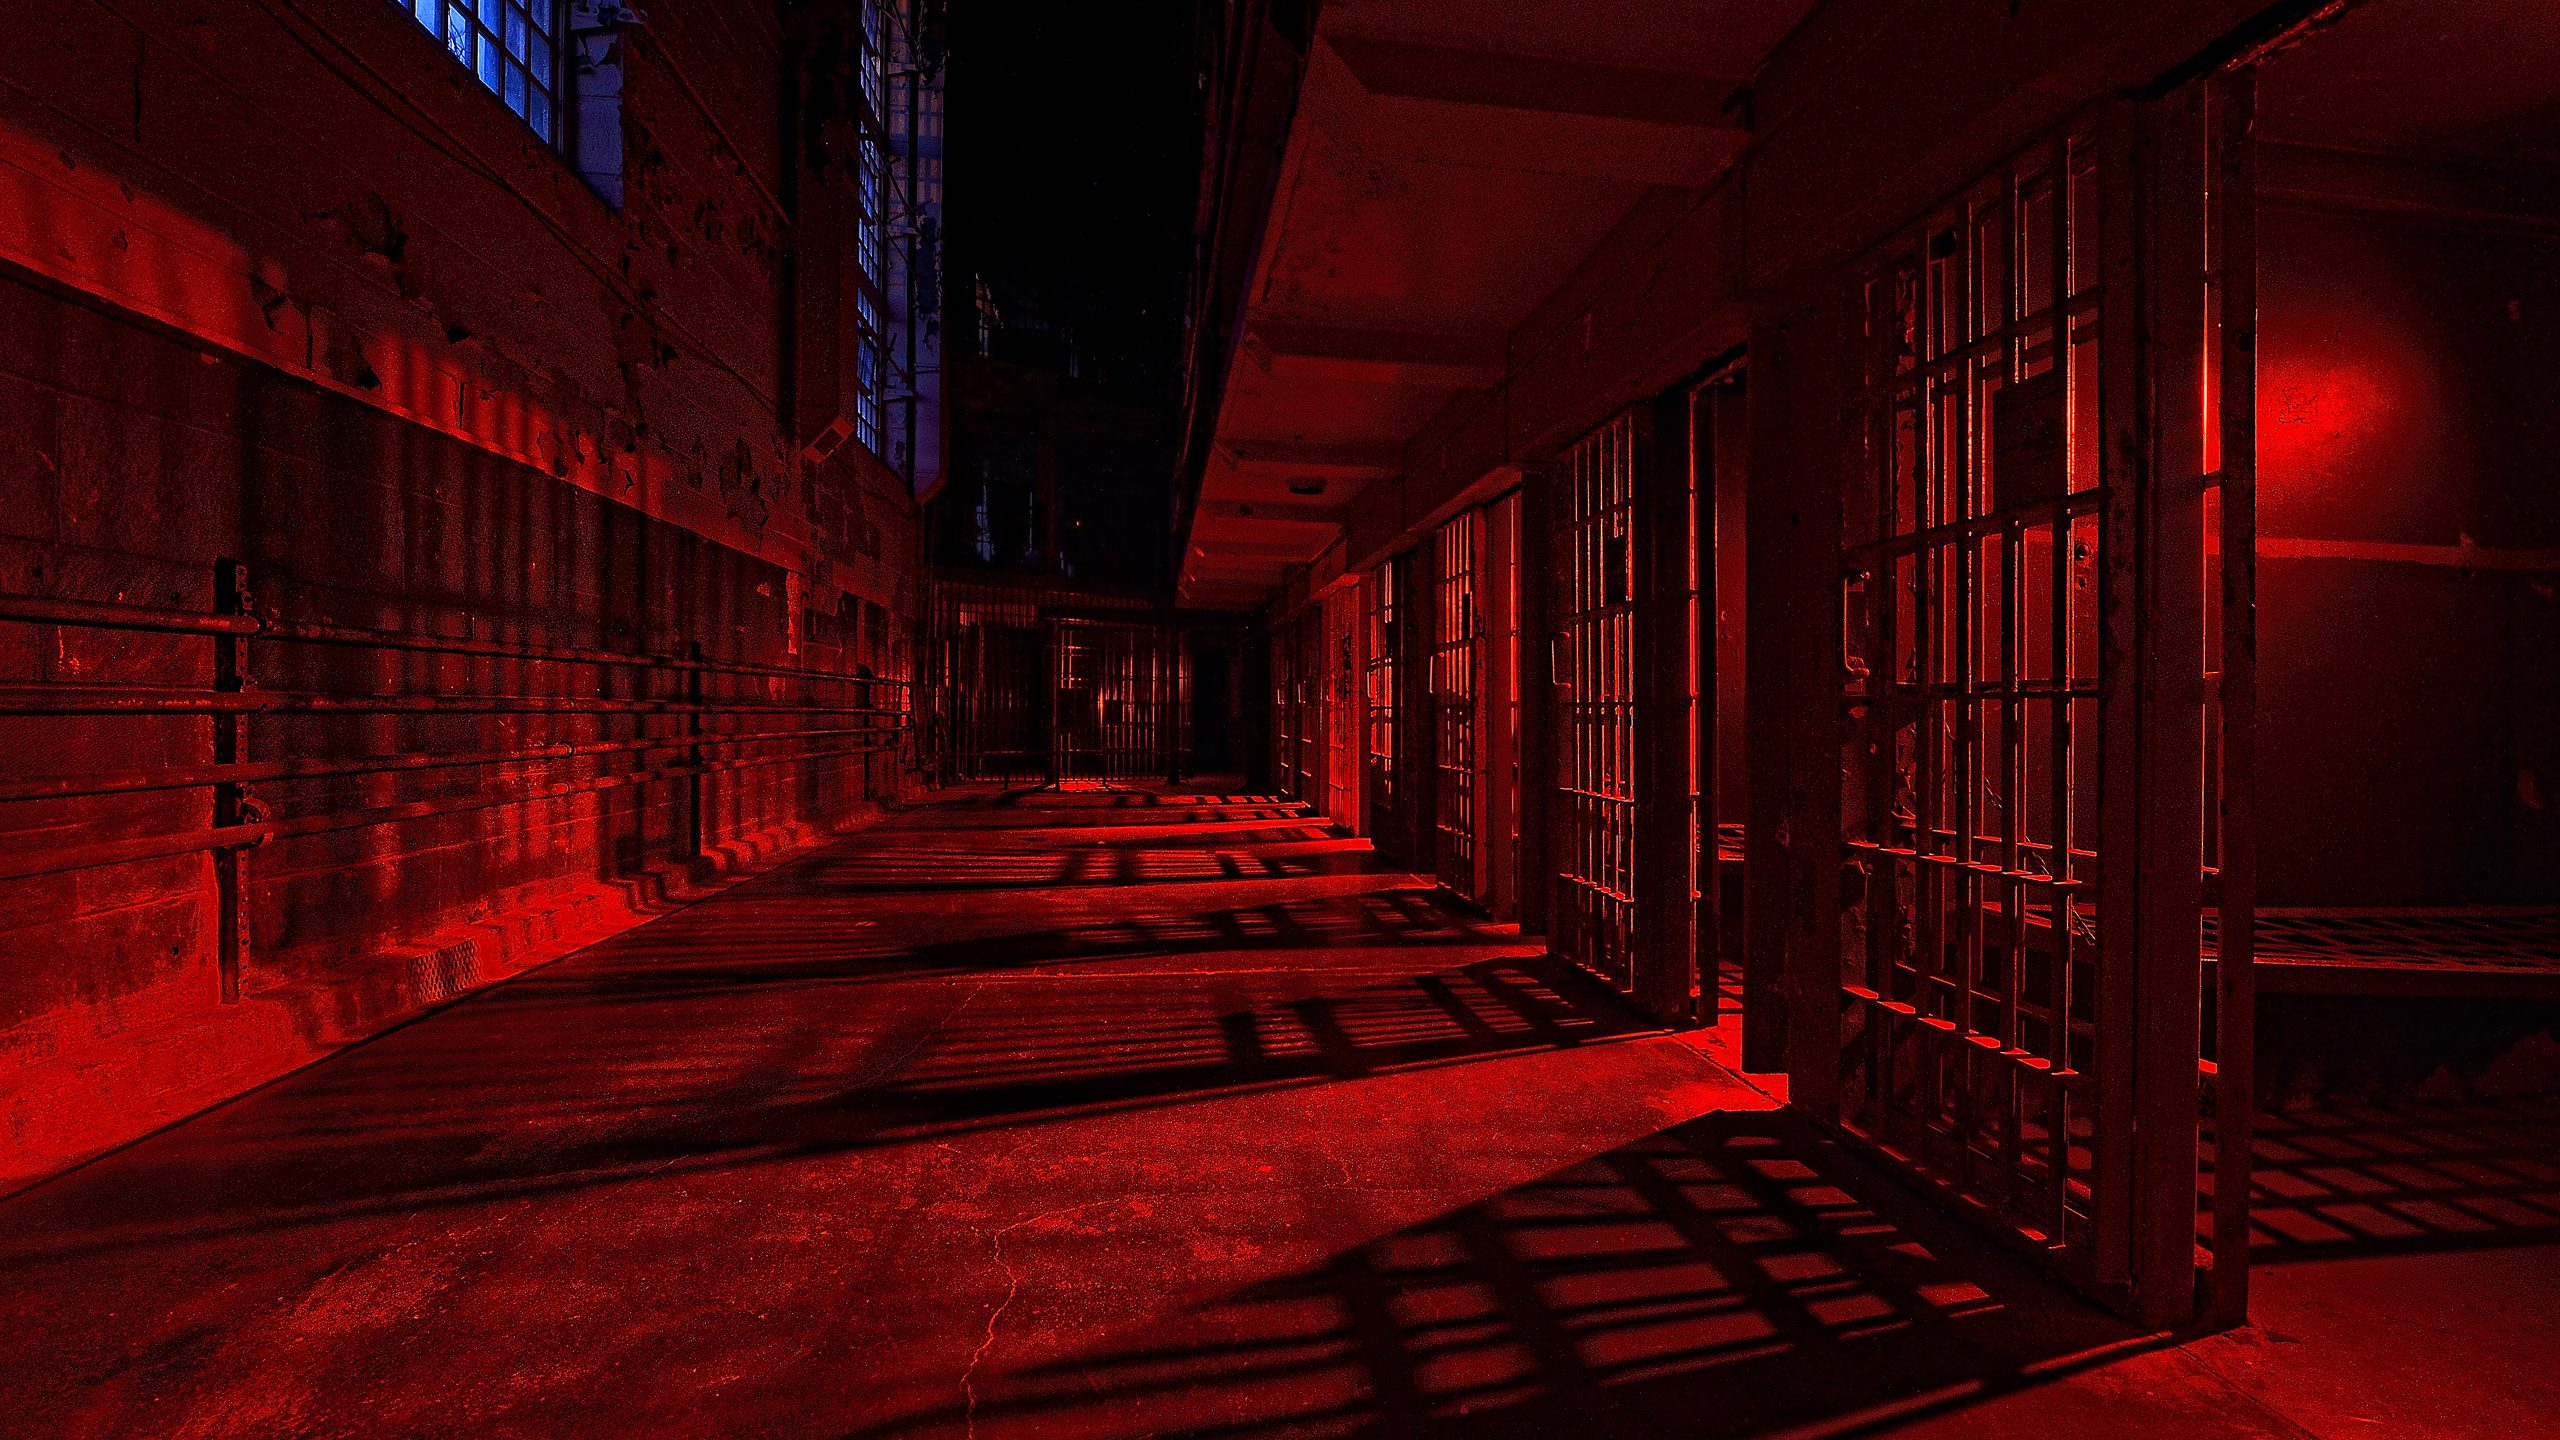 HEADER-7513_kenlee_2017-07-11_1840_west-virginia_moundsville_penitentiary_blockJandk_prisoncells-red_255sf8iso200_300dpi-HEADER-PHOTOFOCUS-MOUNDSVILLE